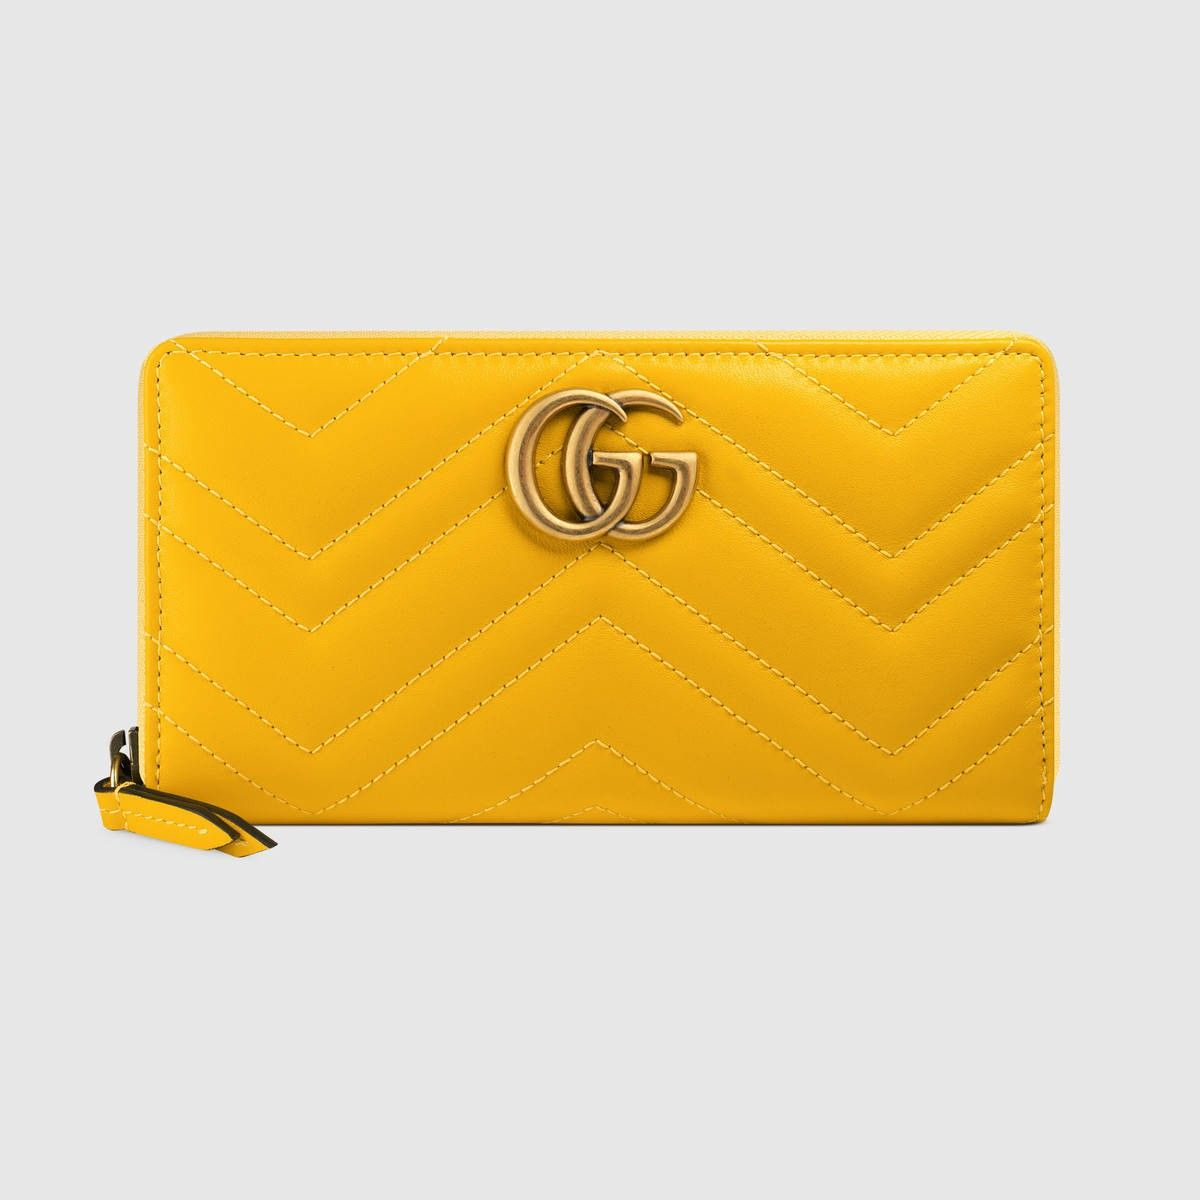 0ea32cf90e51d1 GUCCI Gg Marmont Zip Around Wallet - Yellow Leather. #gucci #all ...